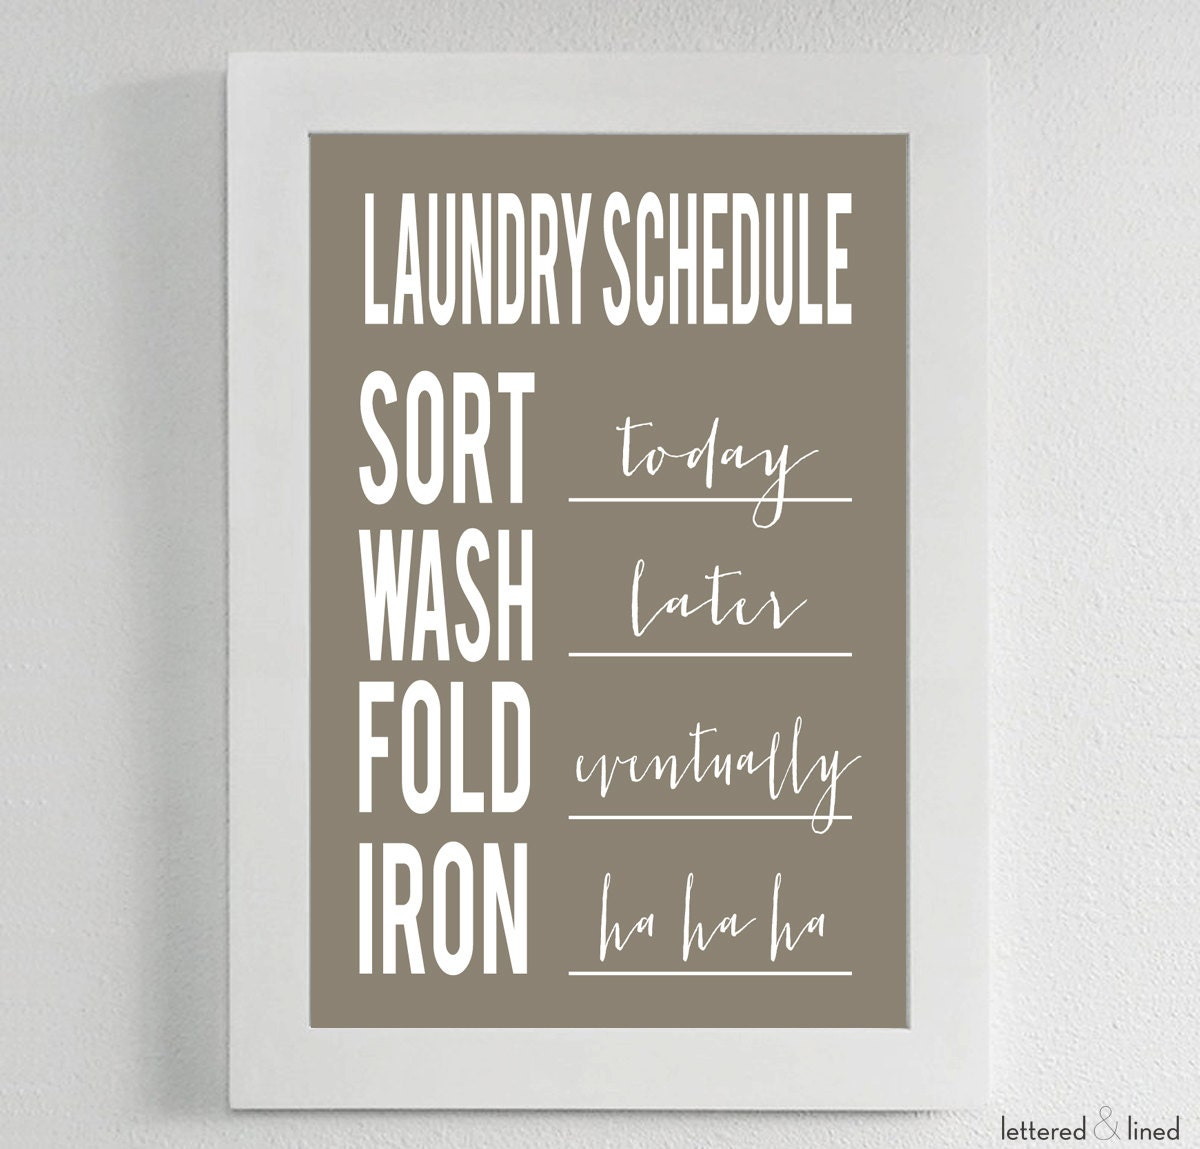 Laundry Symbols Poster Laundry Schedule Choose Background Color Sort Wash Fold